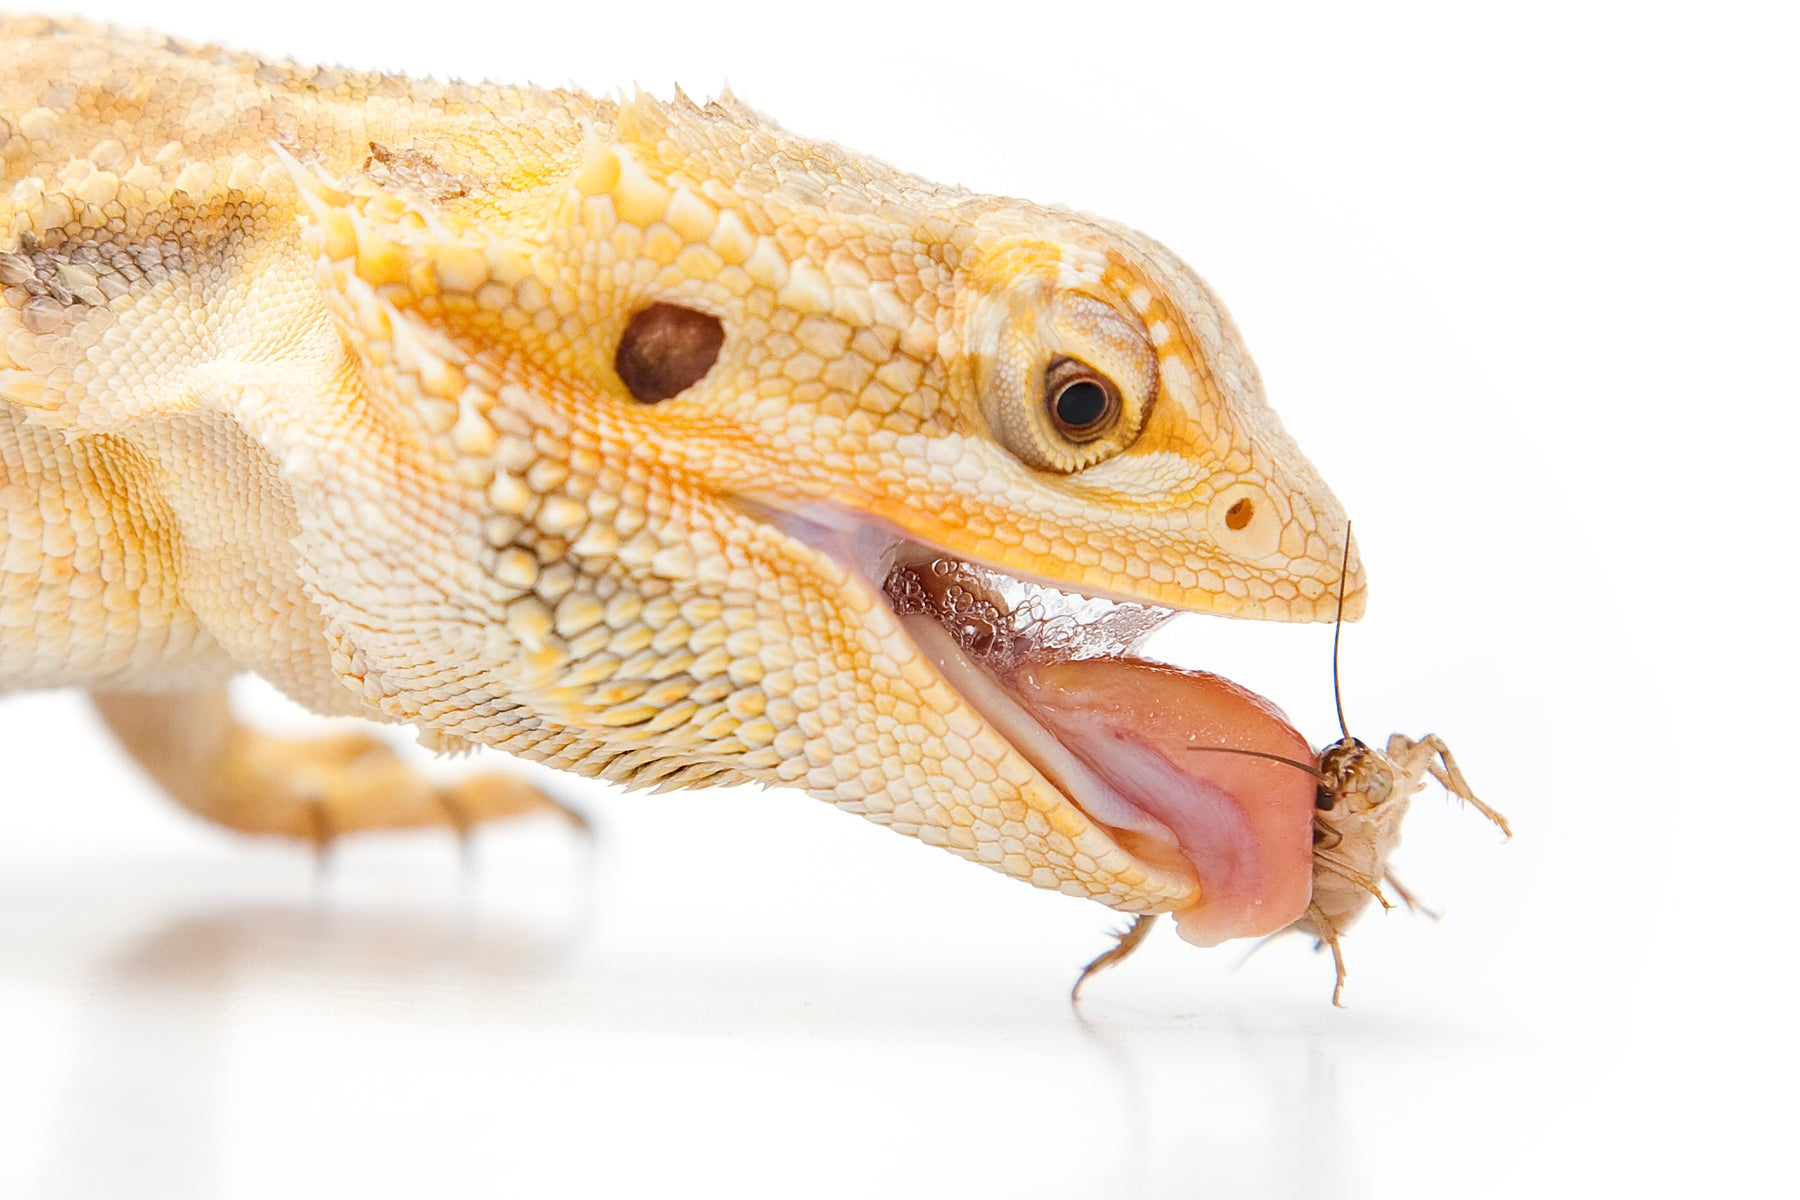 Can Bearded Dragons Eat Meat?